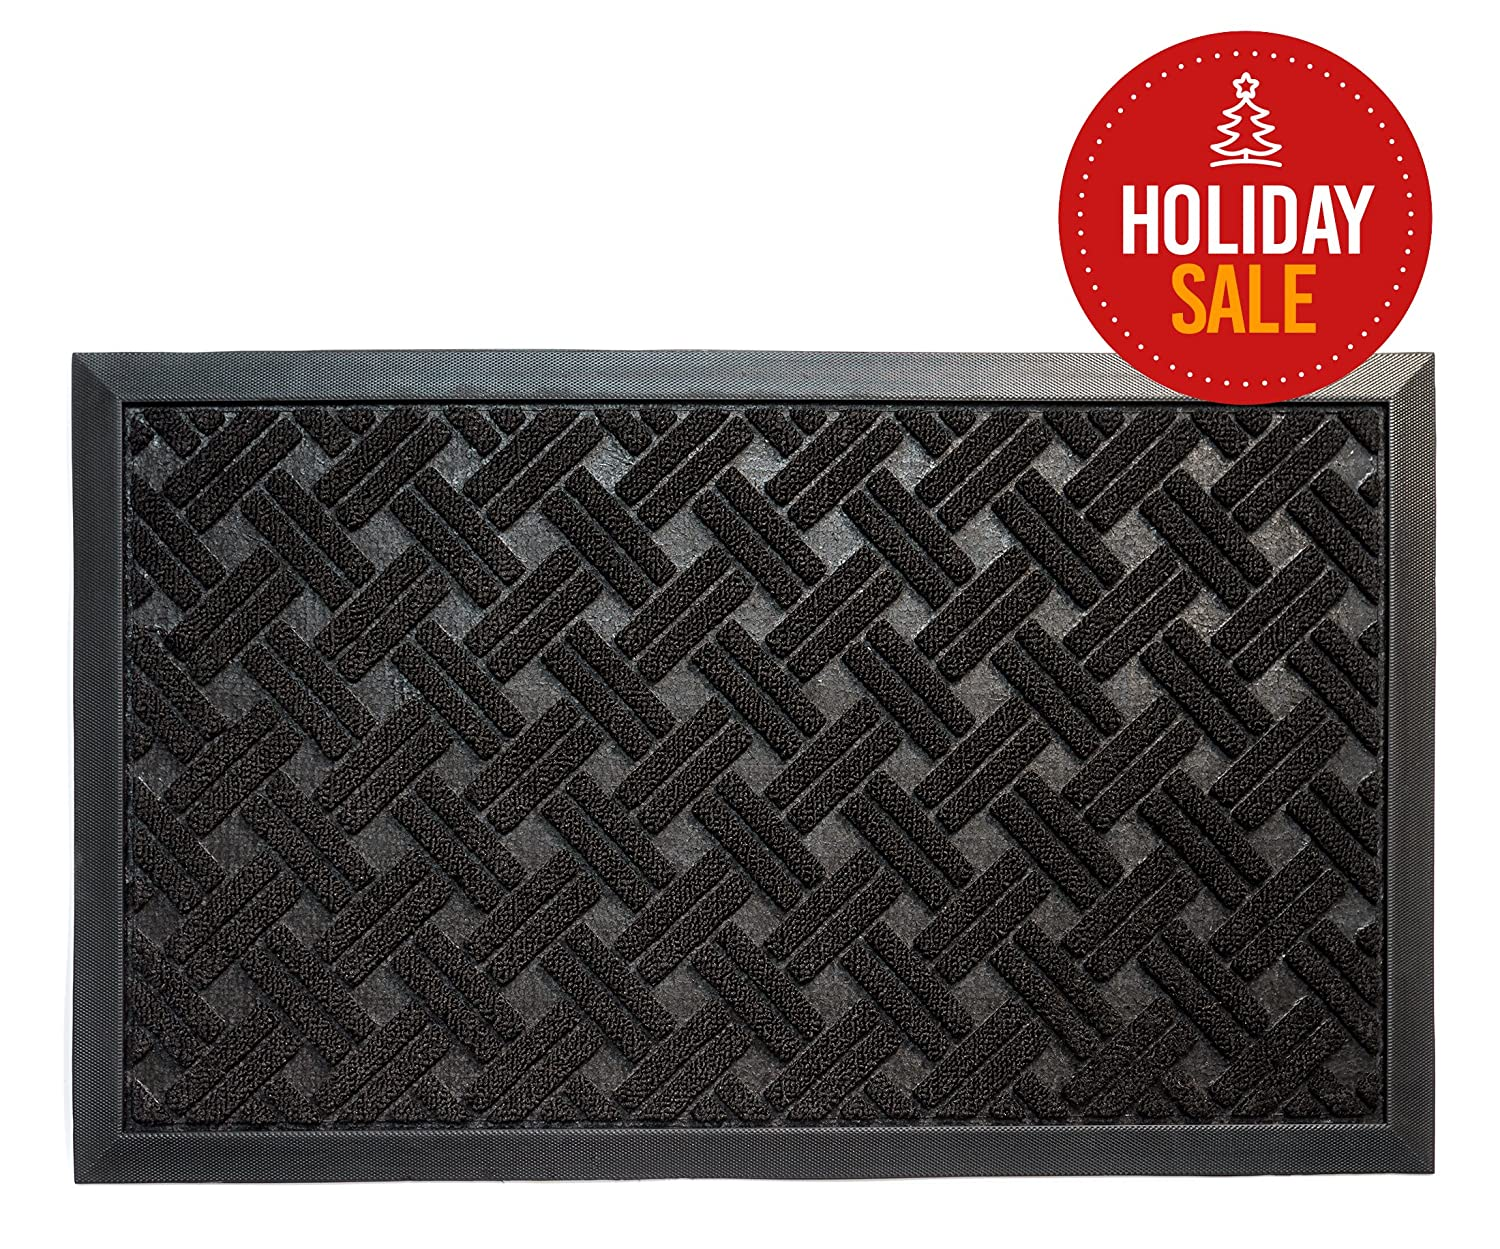 Entrance Rug Doormat, Shoe Scraper Entryway Floor Mat, 29x17-Inches, Black